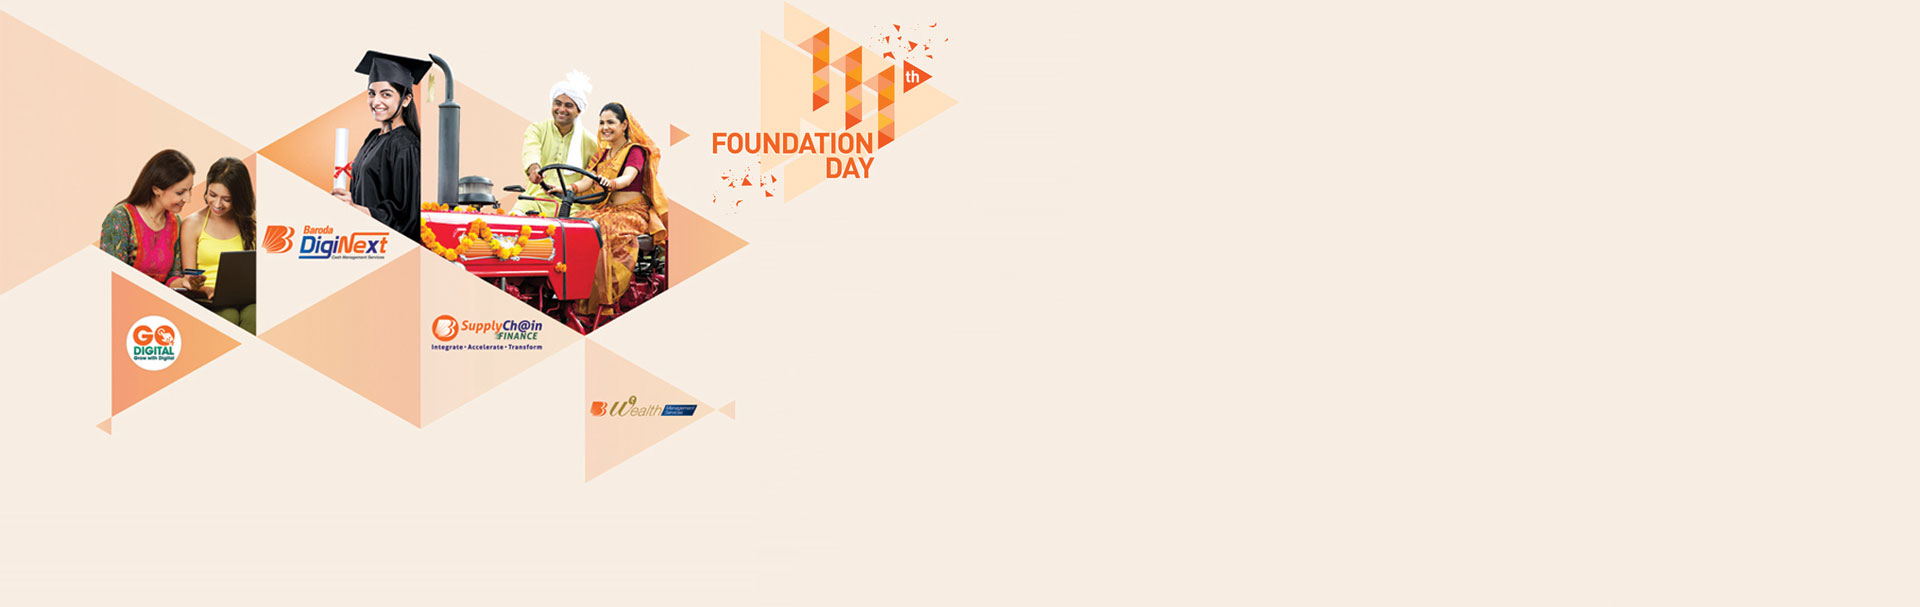 Foundation Day Contest